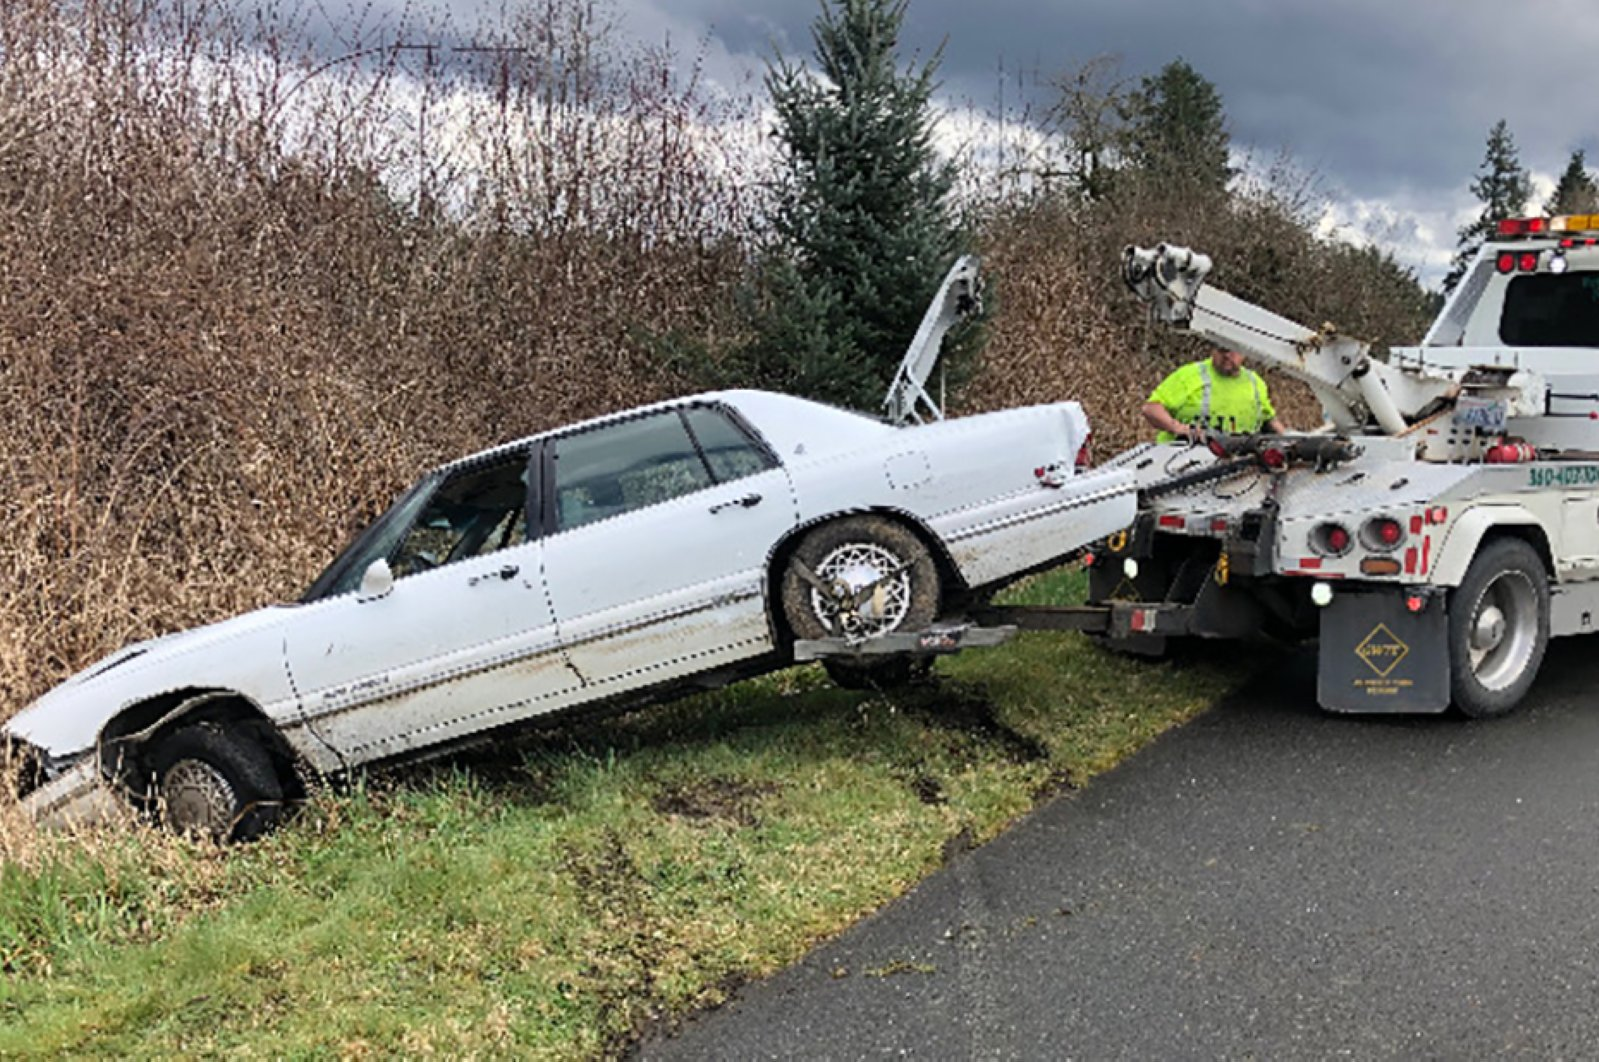 This handout image courtesy of the Washington State Patrol taken by Sgt. Keith Leary shows a car being towed after a high-speed pursuit south of Seattle, Washington, Sunday, March 29, 2020. (AFP Photo)